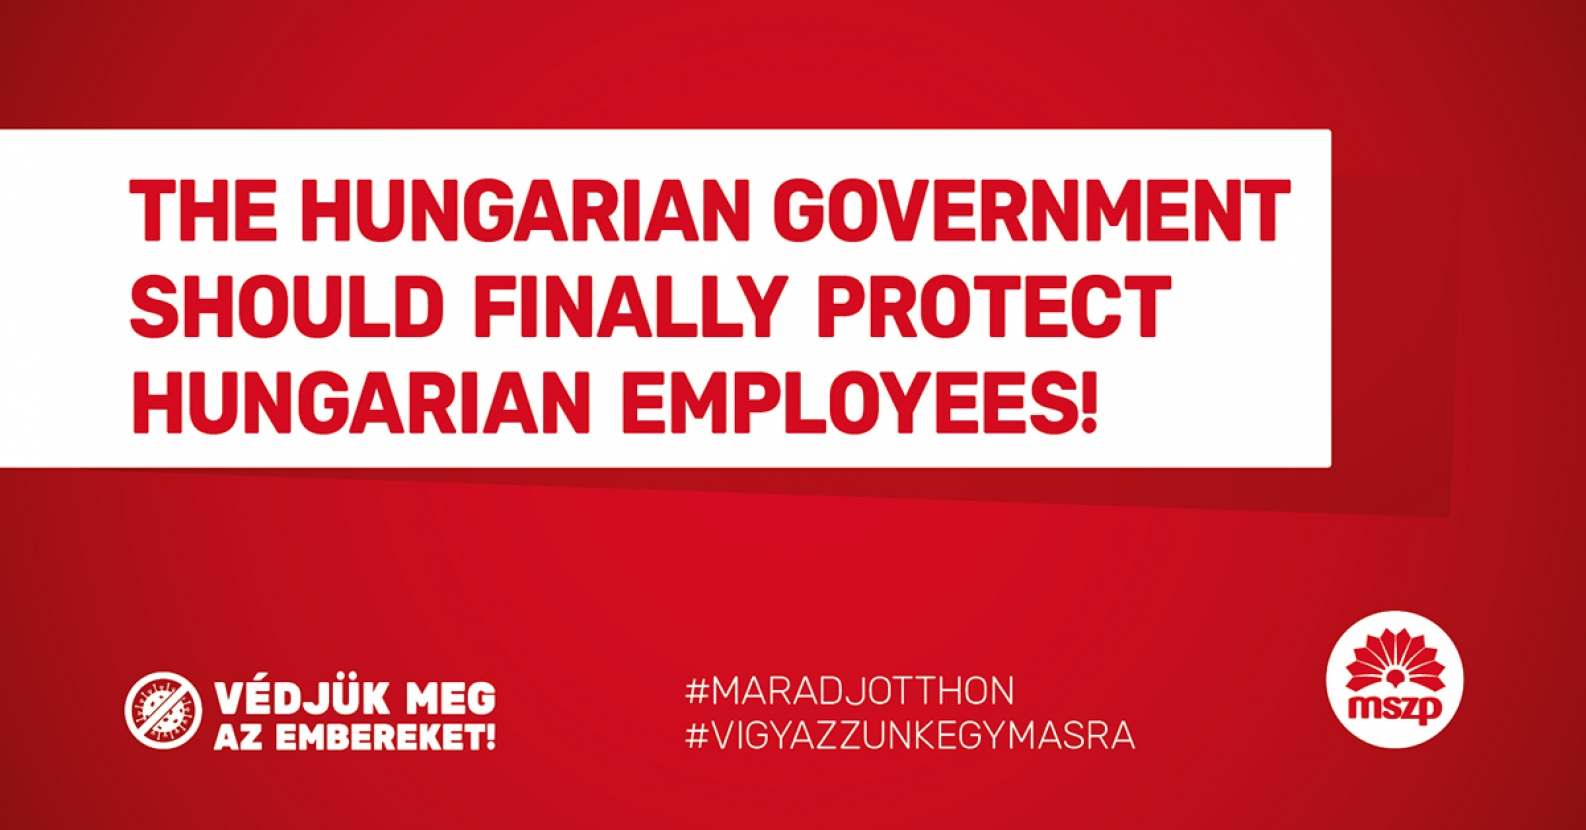 MSZP Supports Hungarian Trade Union Confederation in Struggle to Protect Workers before Constitutional Court